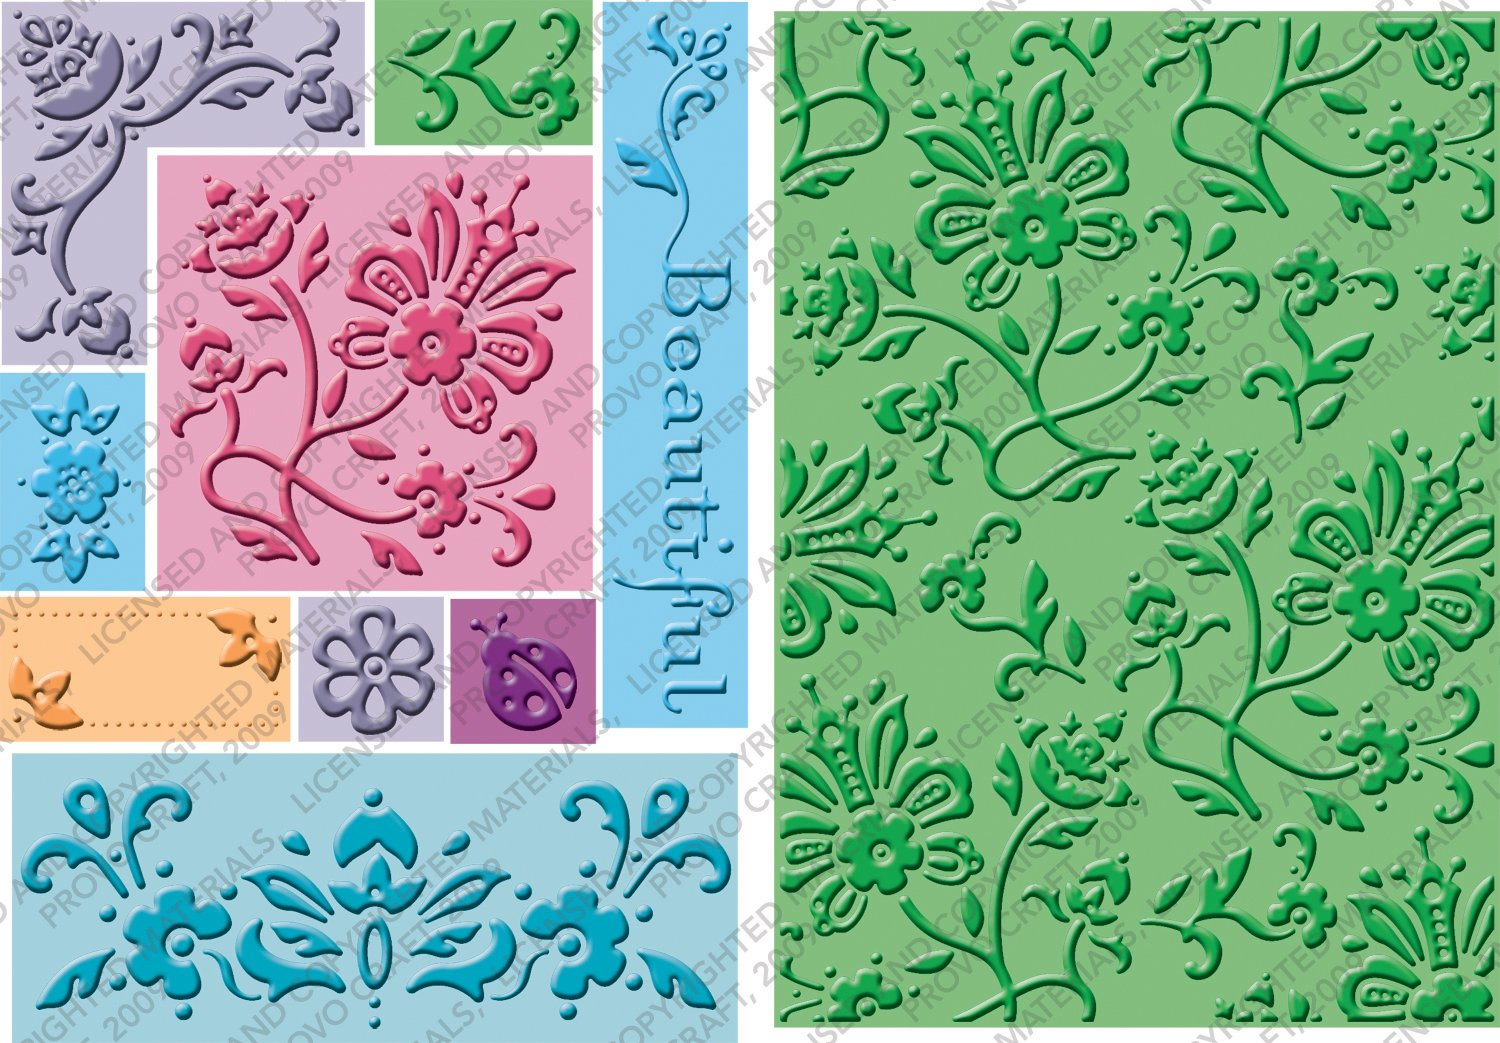 Cricut Cuttlebug All-in-One Beautiful Embossing Plates 2000286